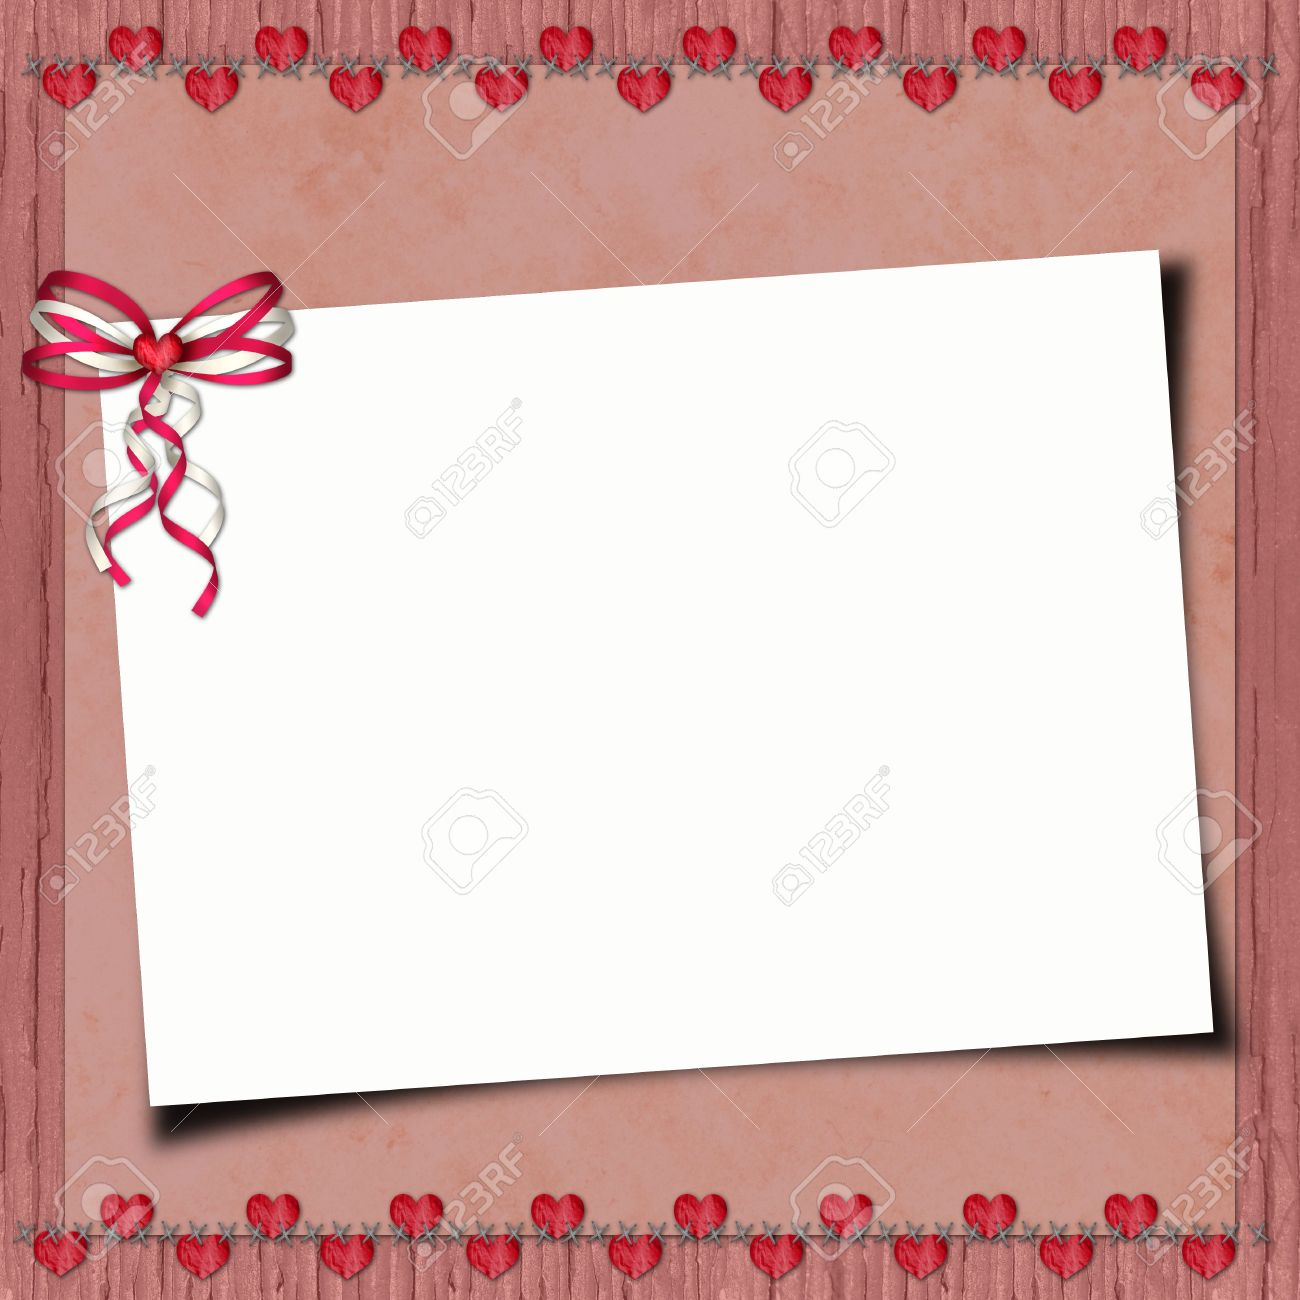 Blank Note Paper On Textured Background Photo Picture And – Blank Paper Background